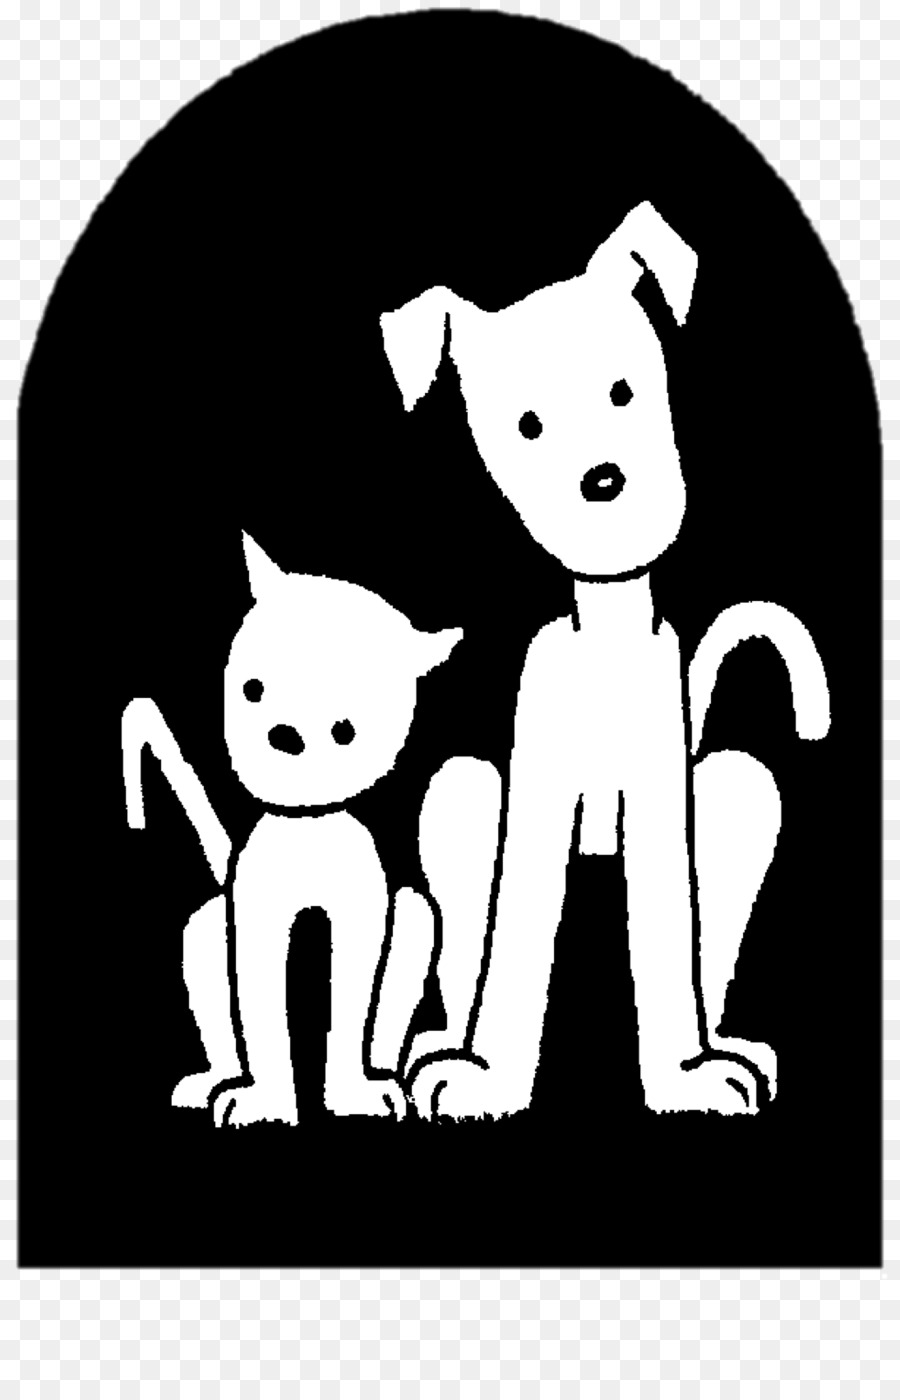 Animal shelter clipart 6 » Clipart Station.